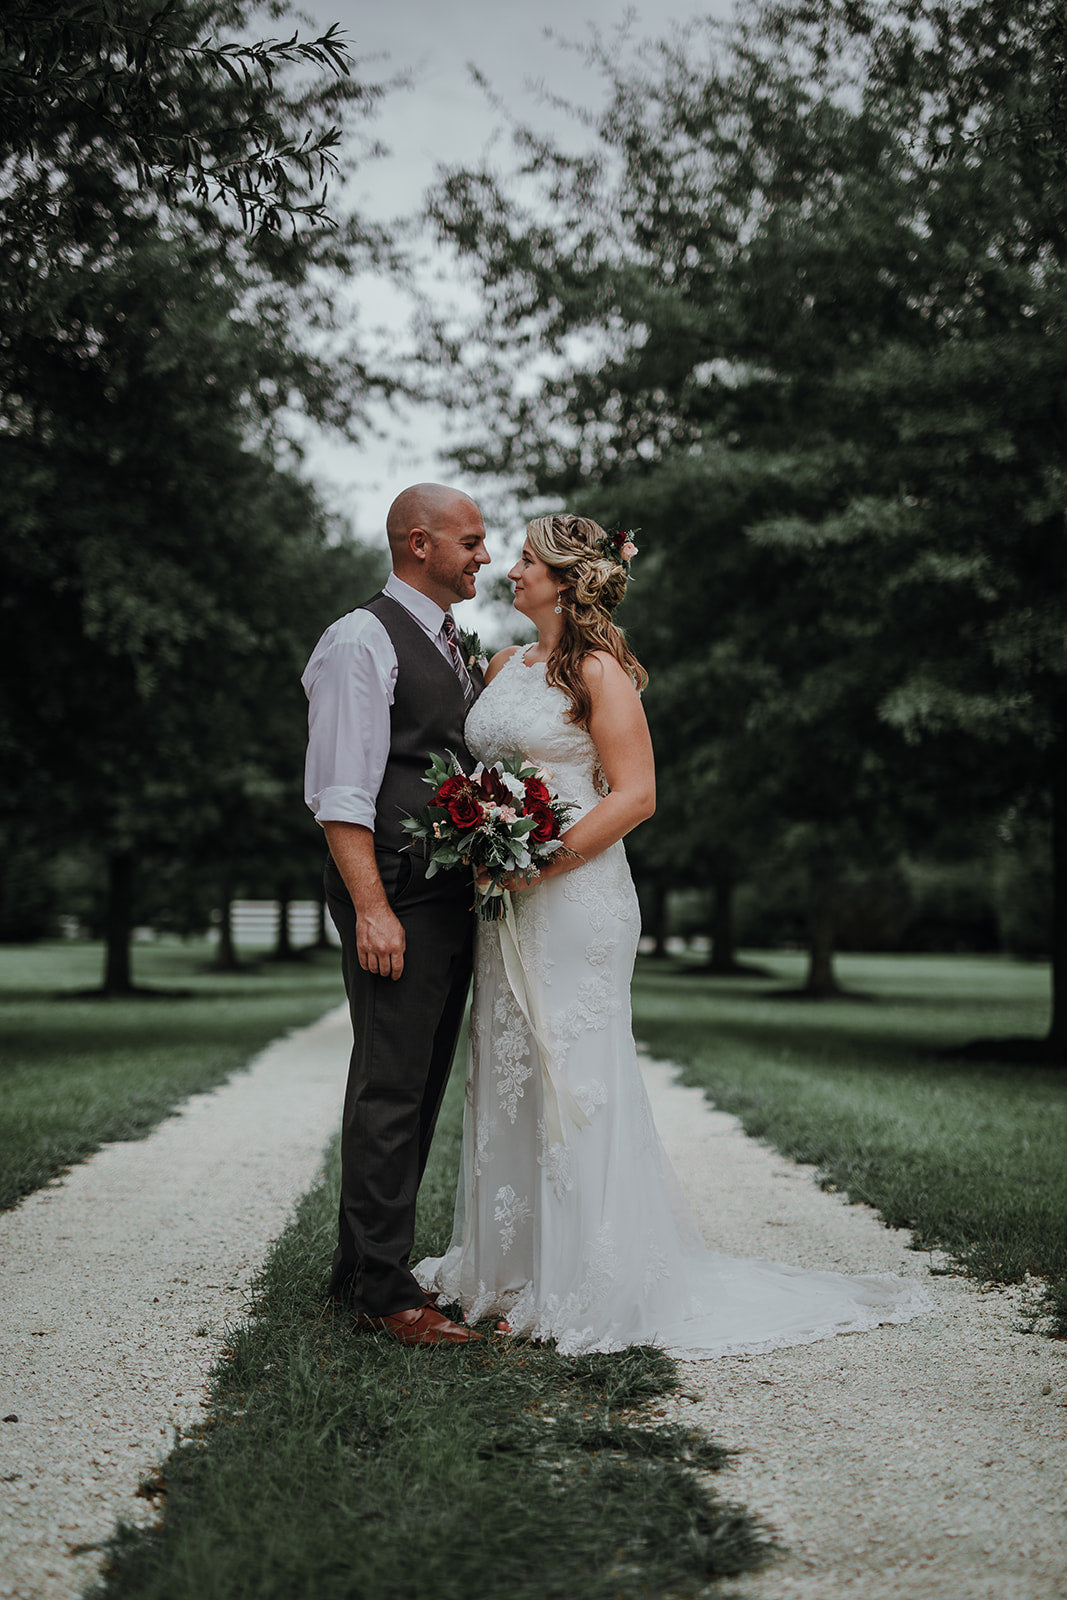 Nate Bittinger Photography // little miss lovely floral design // public landing barn snow hill md wedding // burgundy and ivory fall wedding flowers